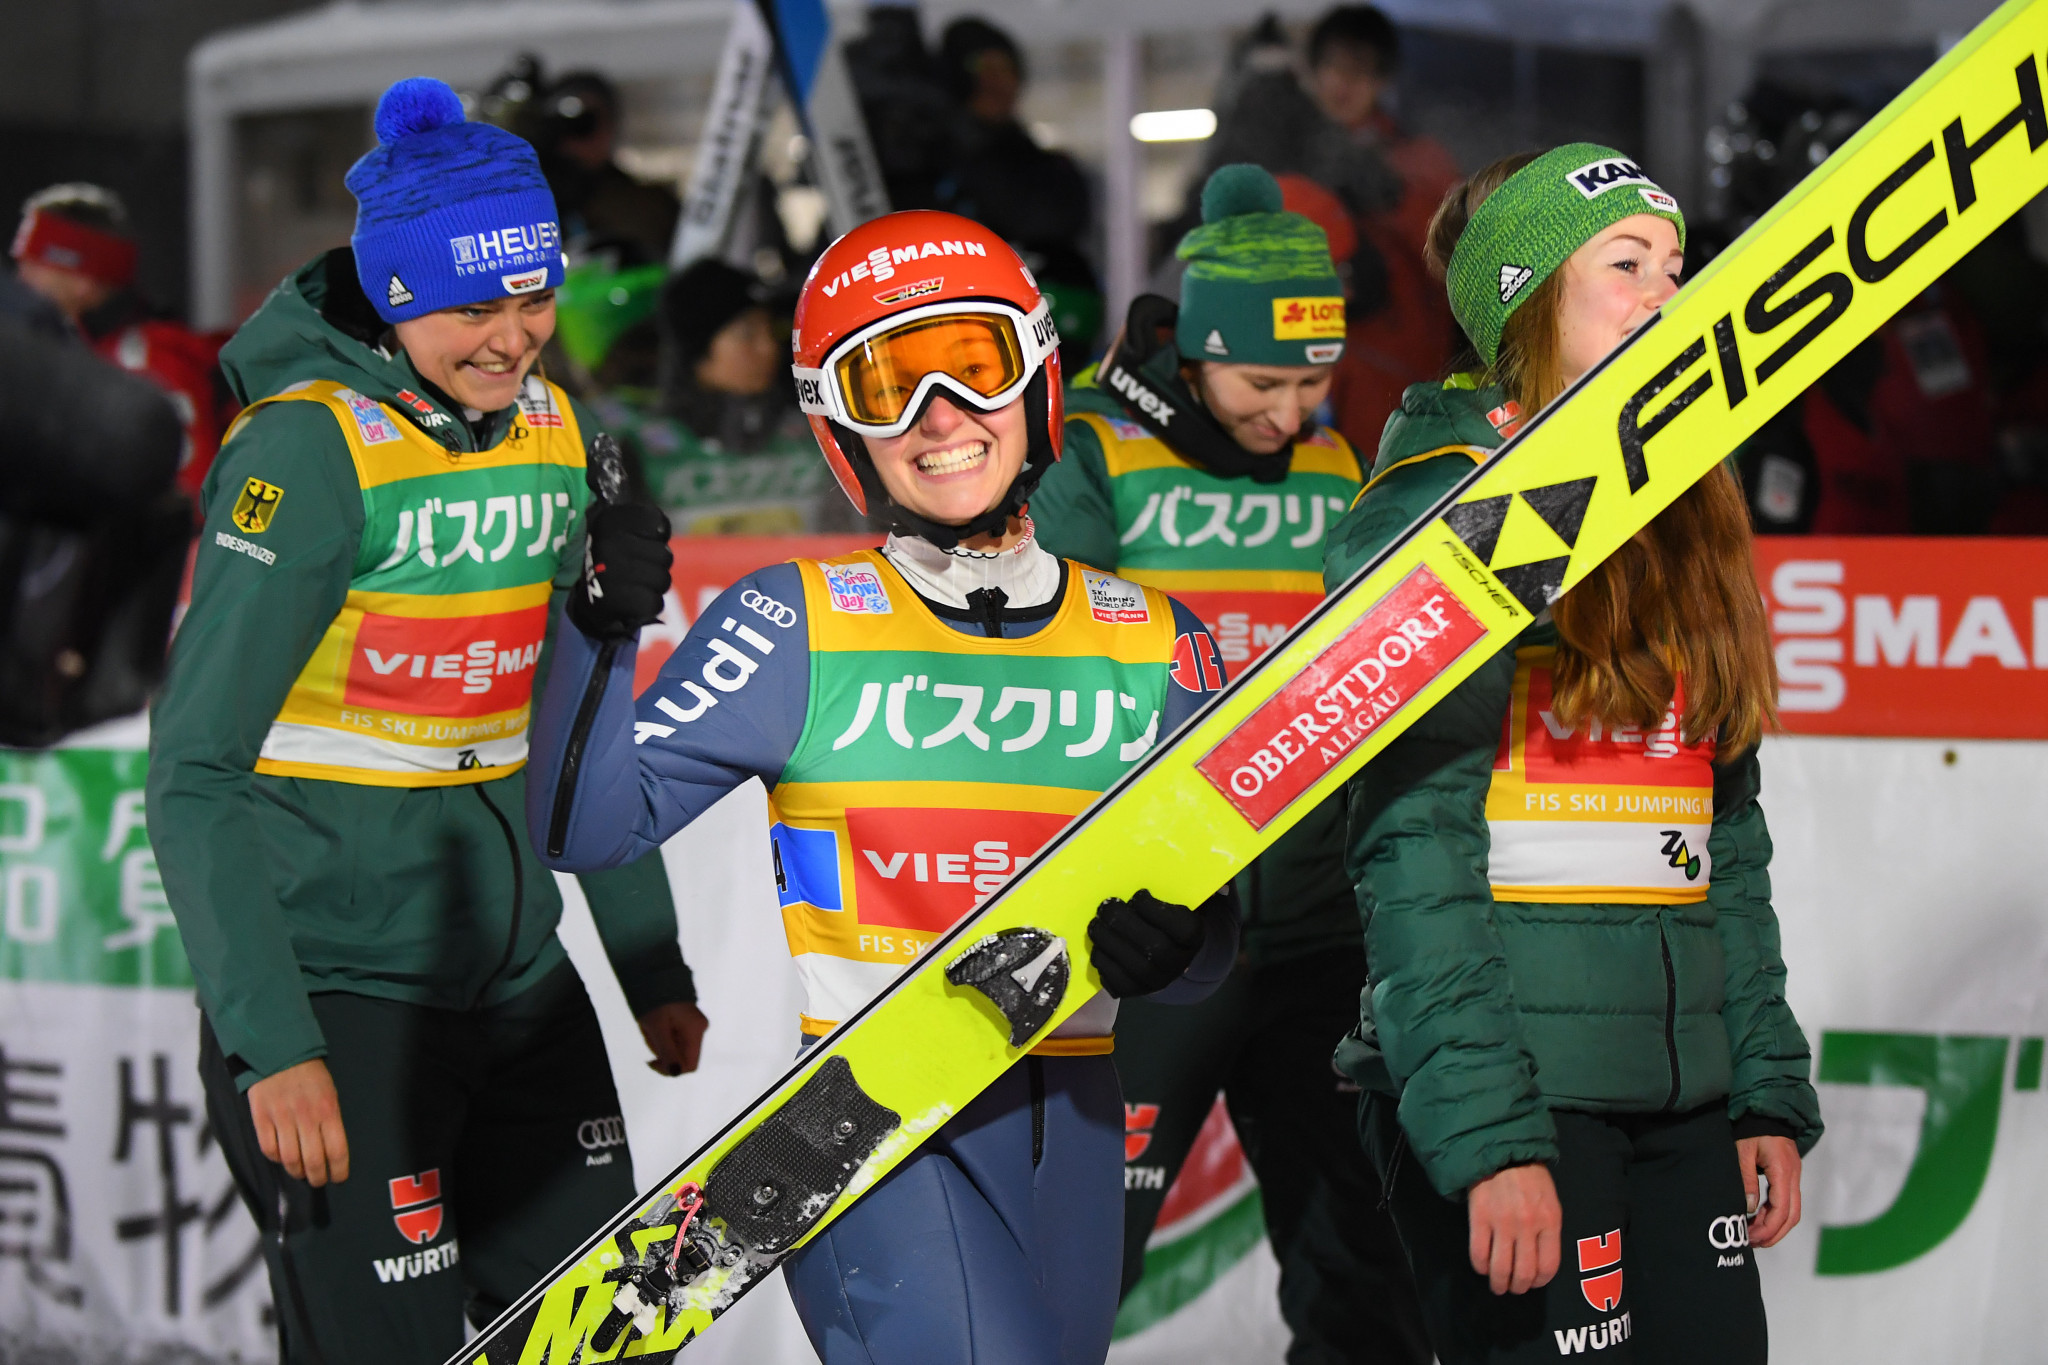 Germany win team titles at FIS Ski Jumping World Cup events in Zao and Zakopane